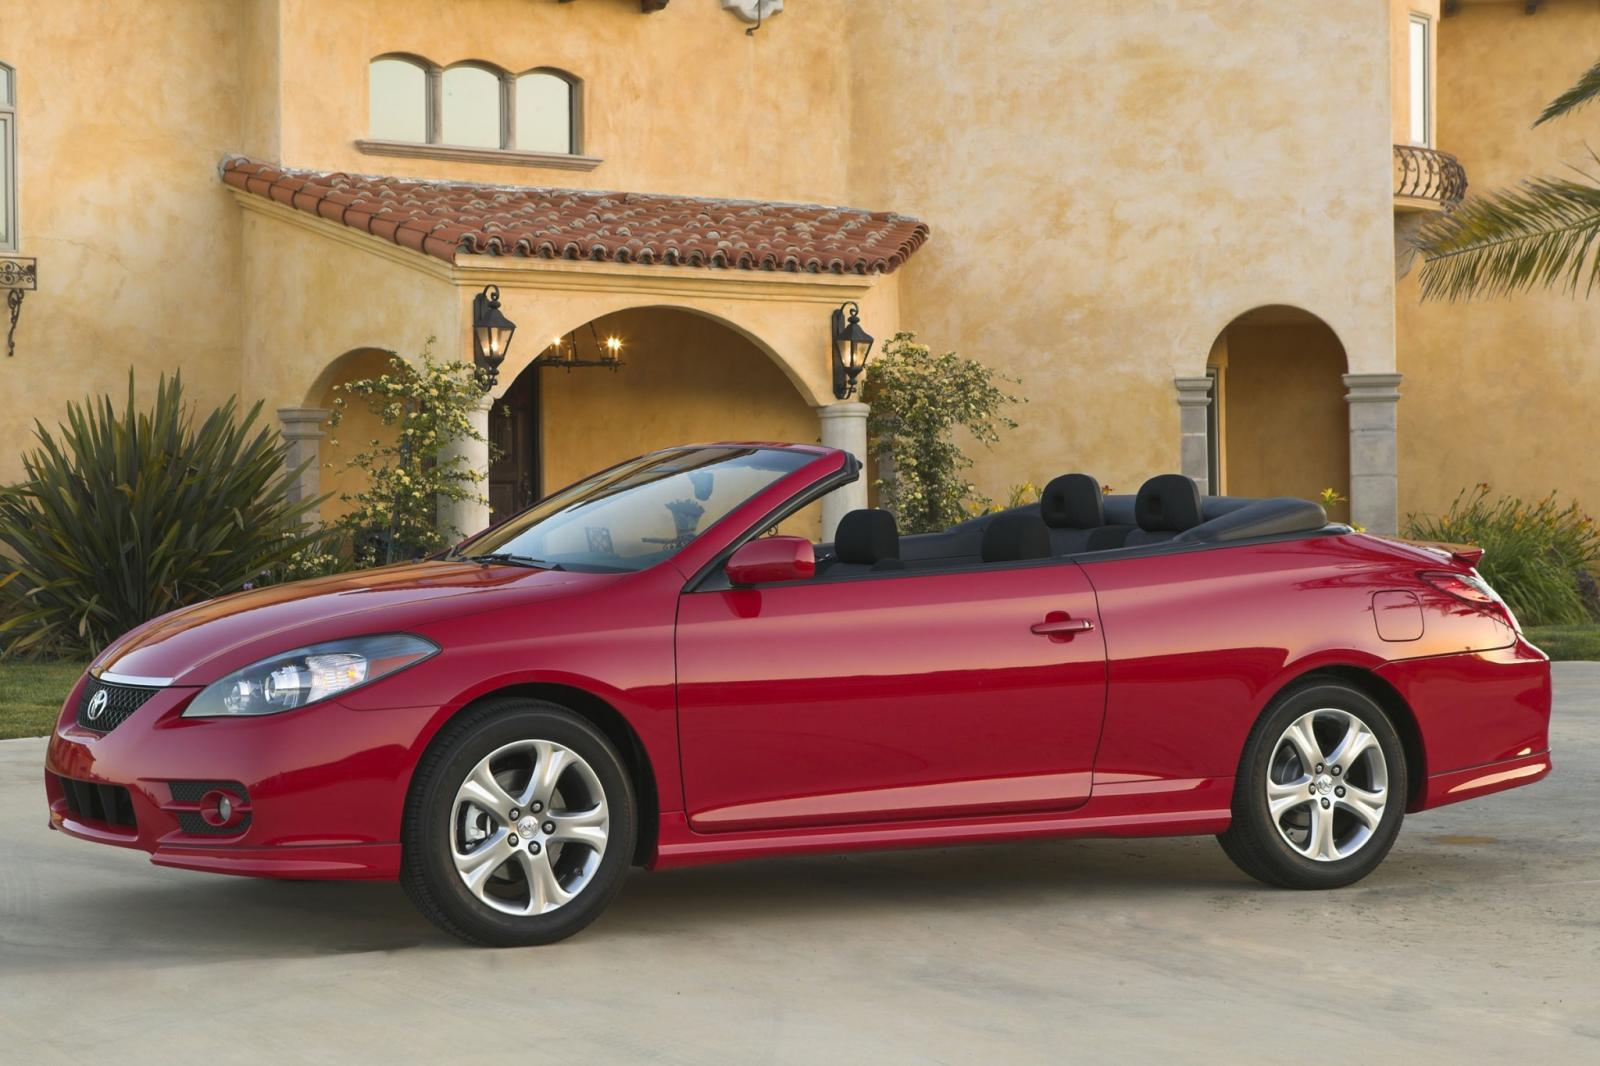 2007 toyota camry solara information and photos zombiedrive. Black Bedroom Furniture Sets. Home Design Ideas